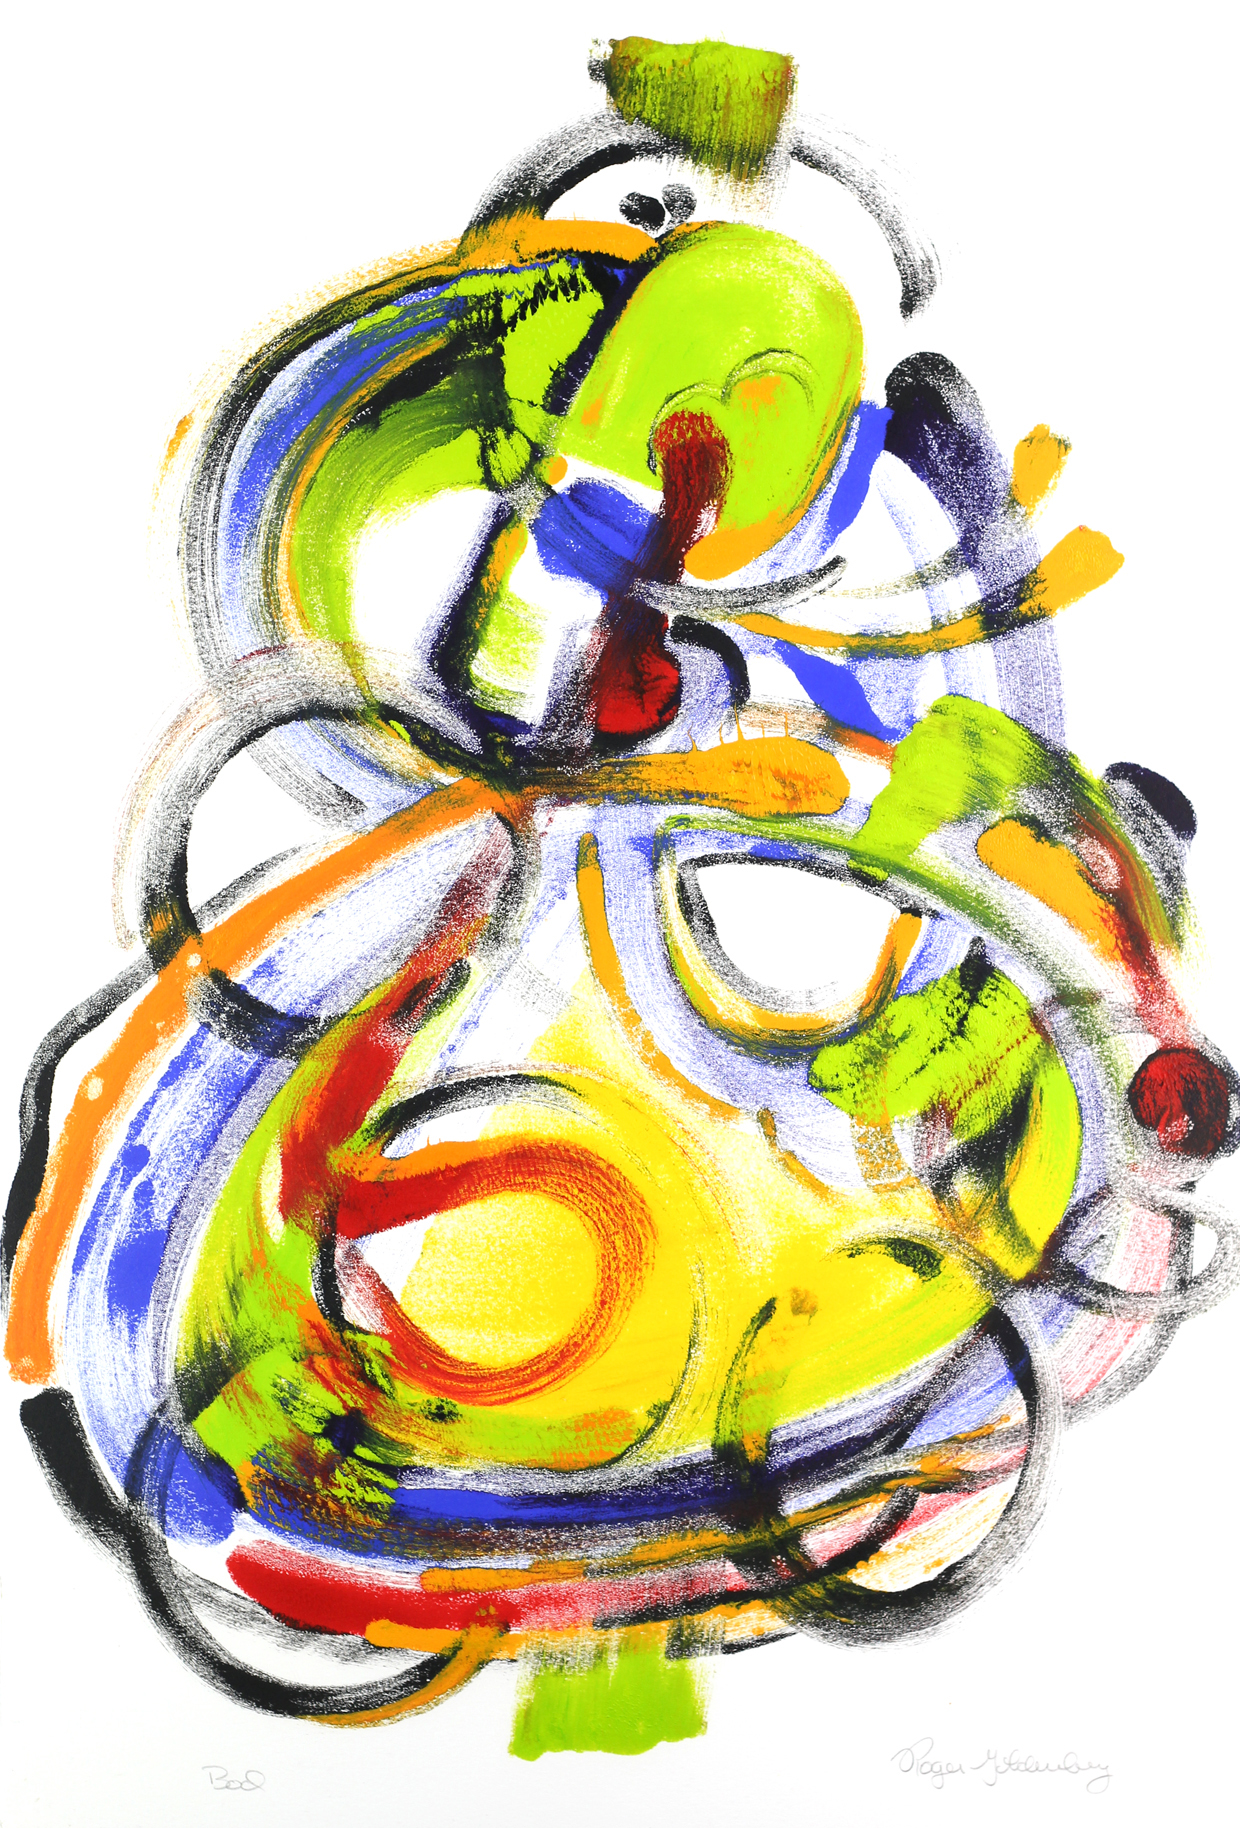 Roger Goldenberg's Visual Jazz Monotype Gallery D has prints pulled from shaped plates. Their style riffs on Goldenberg's shaped visual jazz paintings Bod